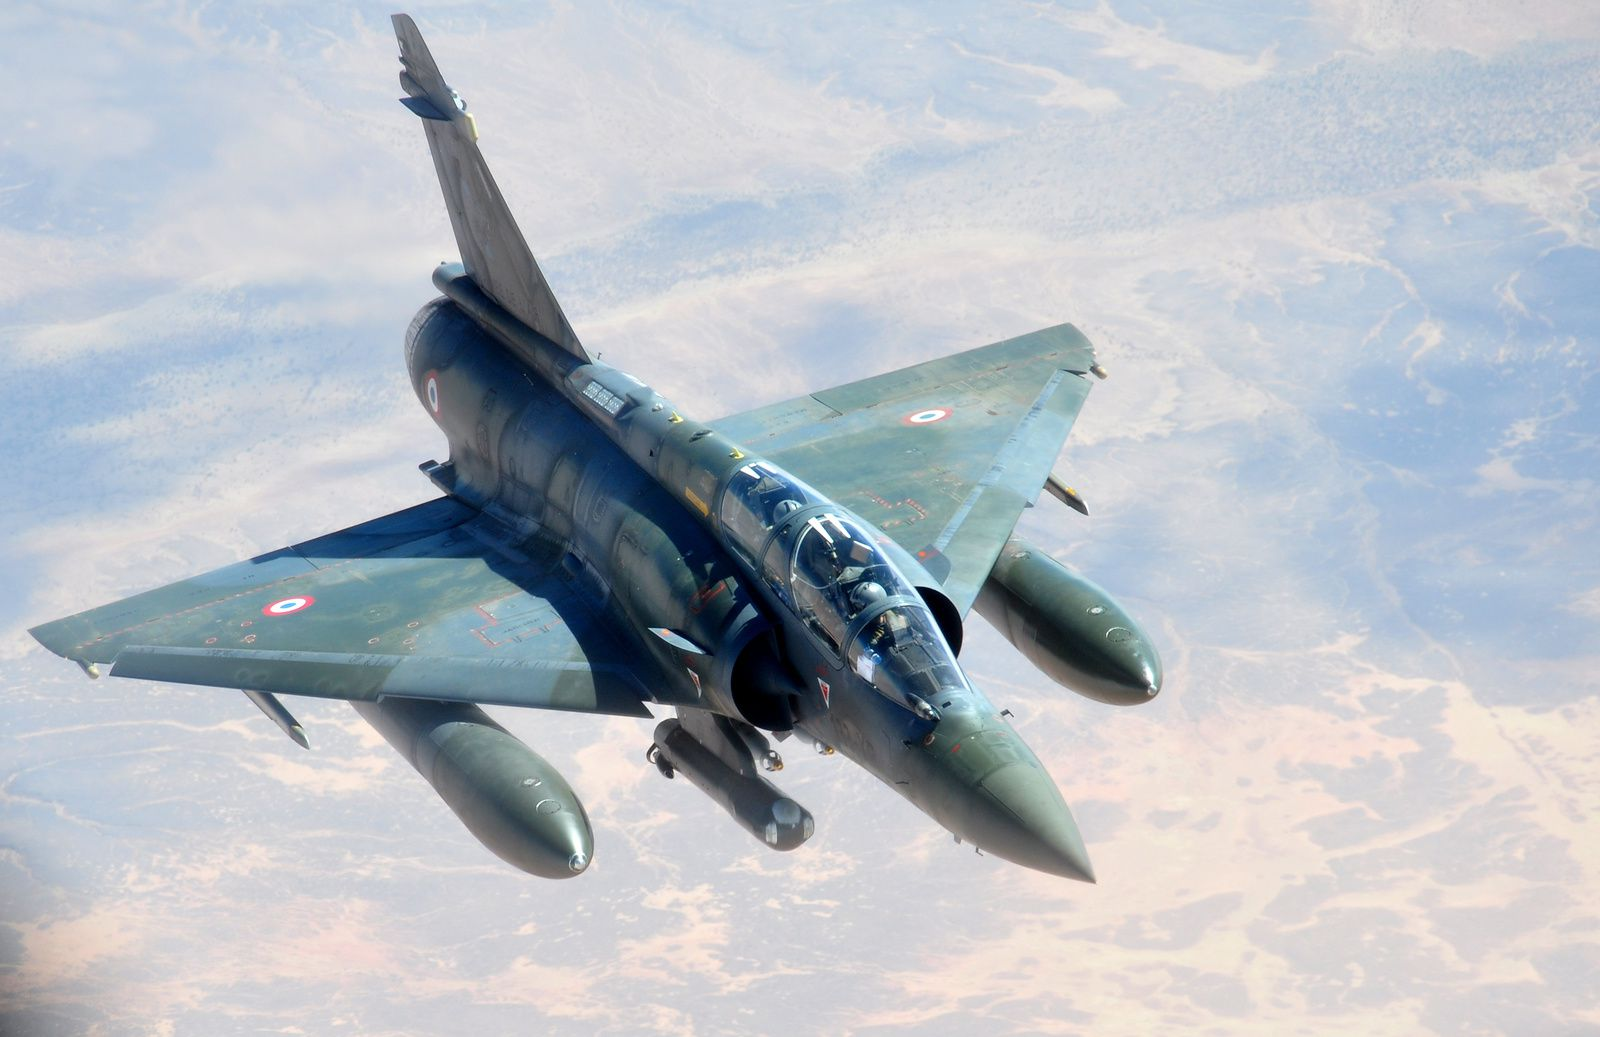 Photo : © US Air Force - Un Mirage 2000D lors d'un ravitaillement en vol au-dessus du Sahel.